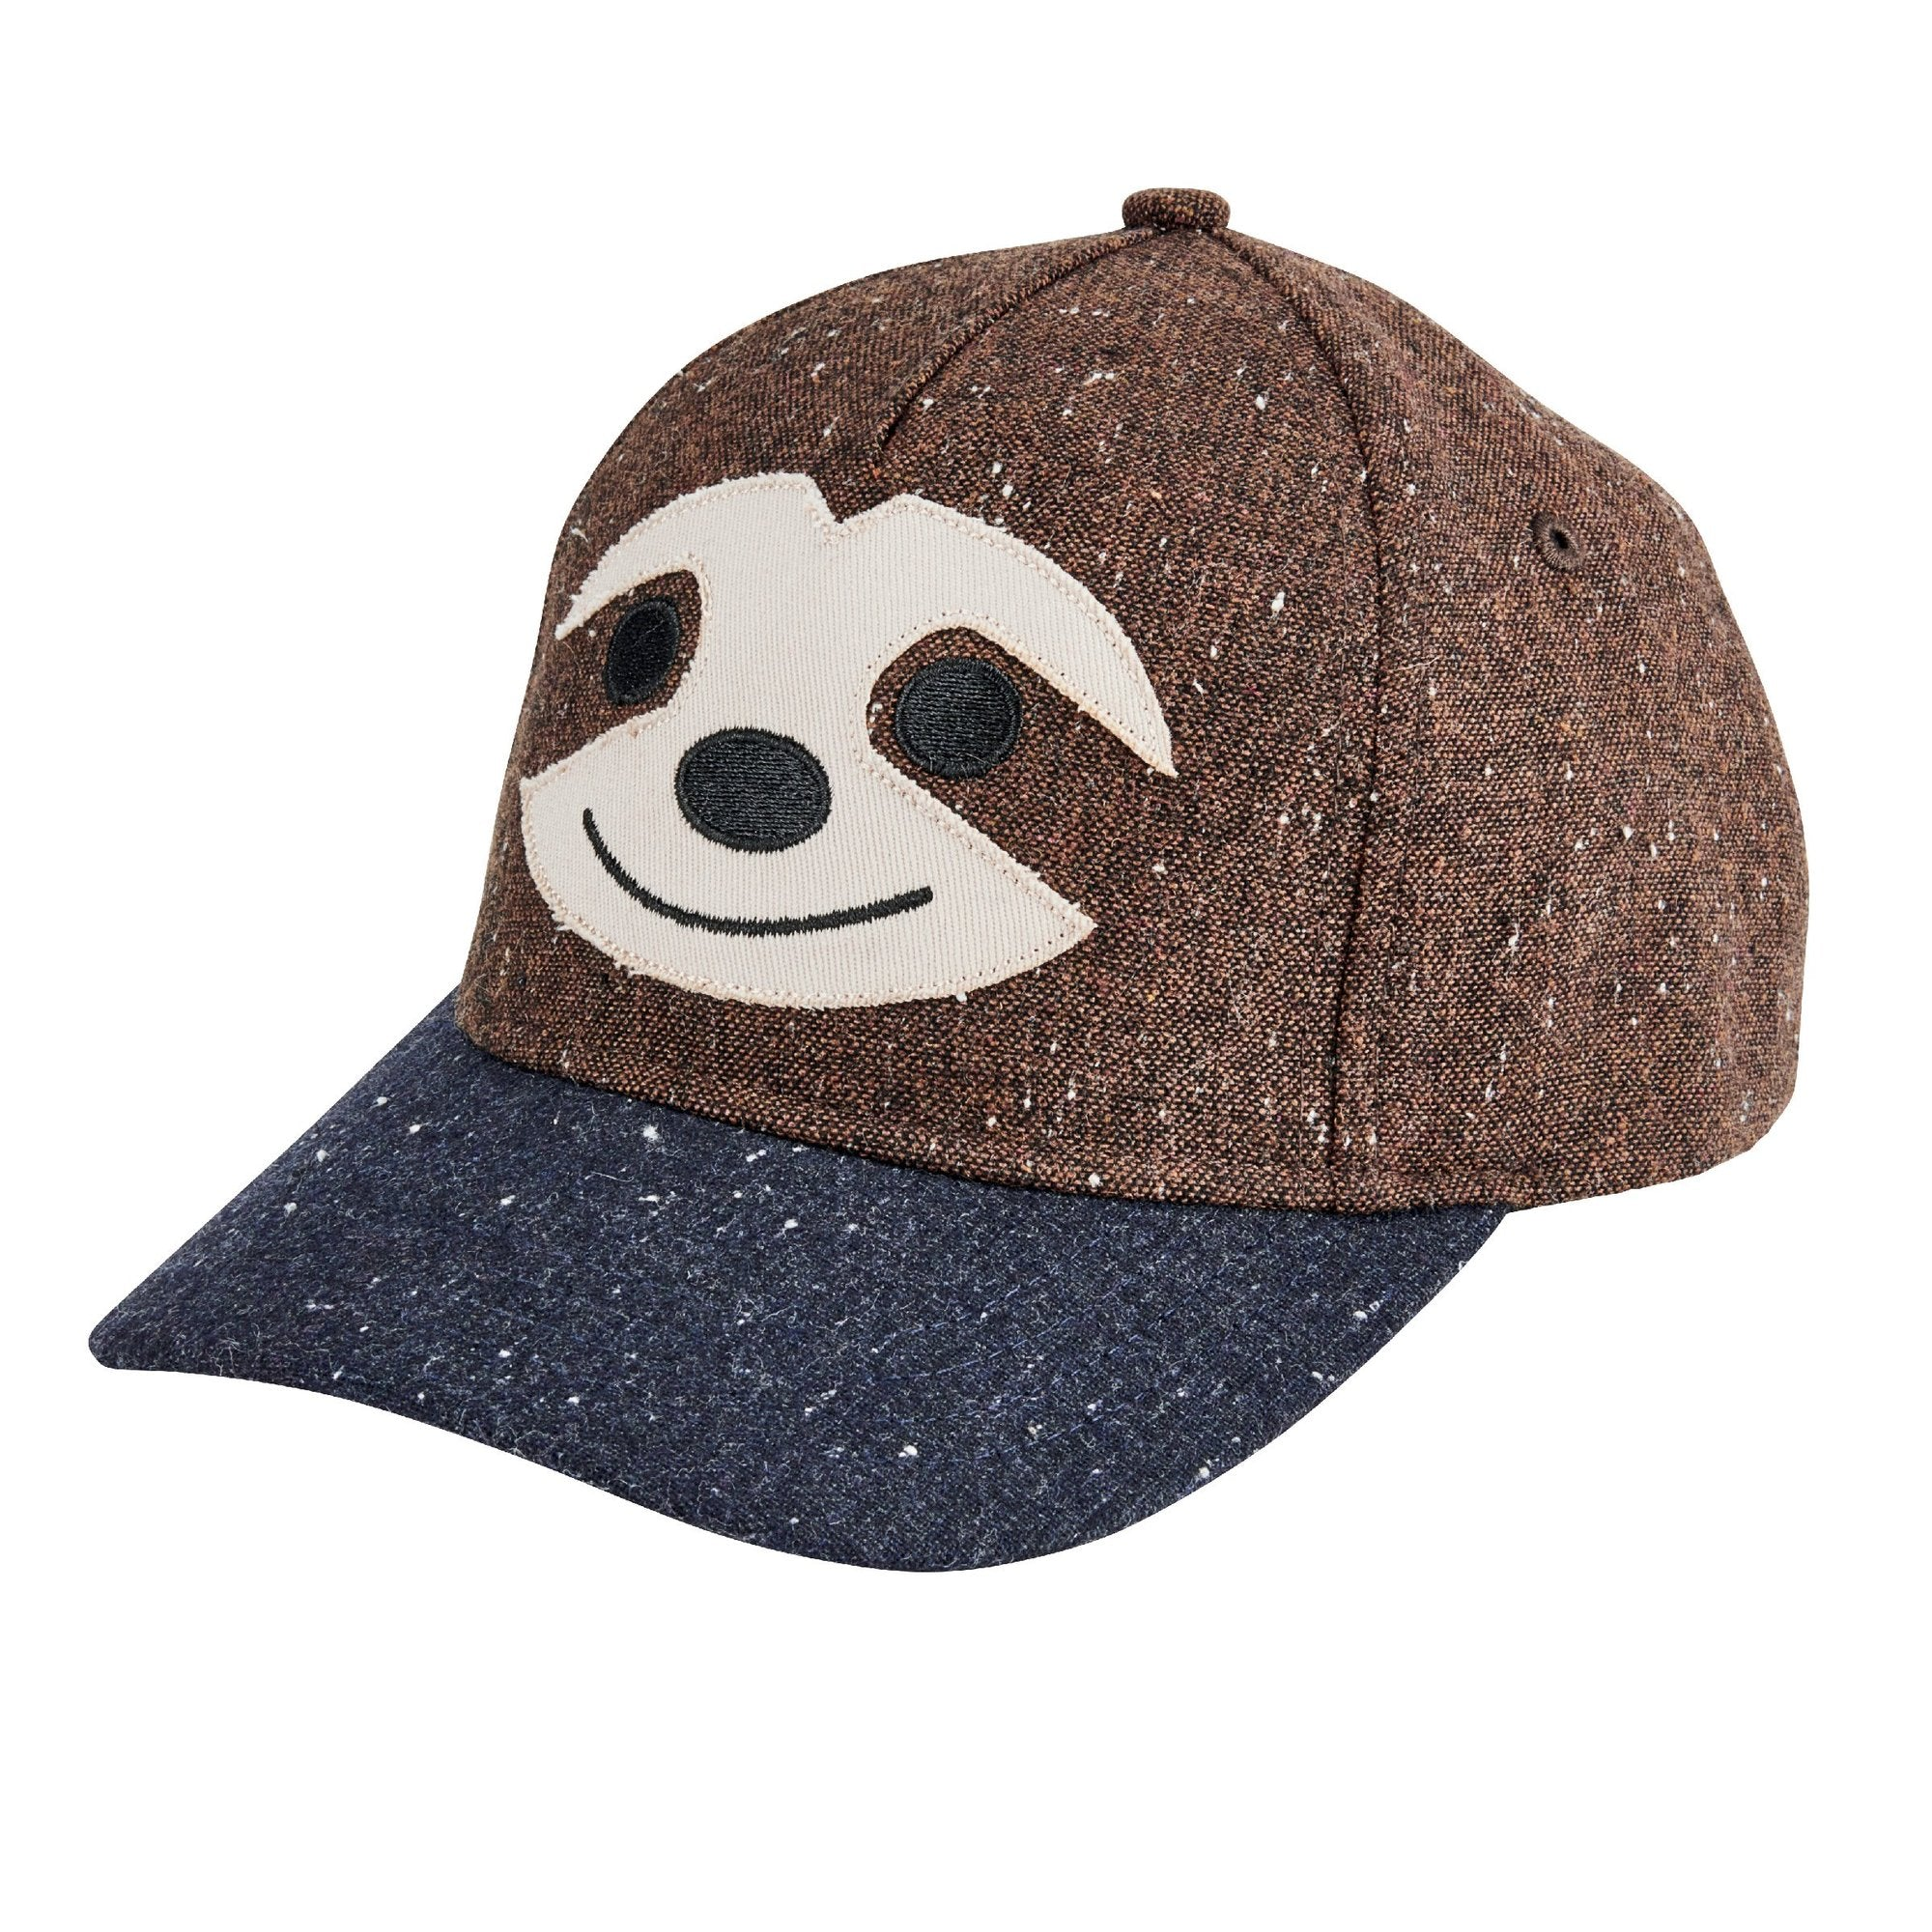 Wool Blend Sloth Cap (3-7 Years)